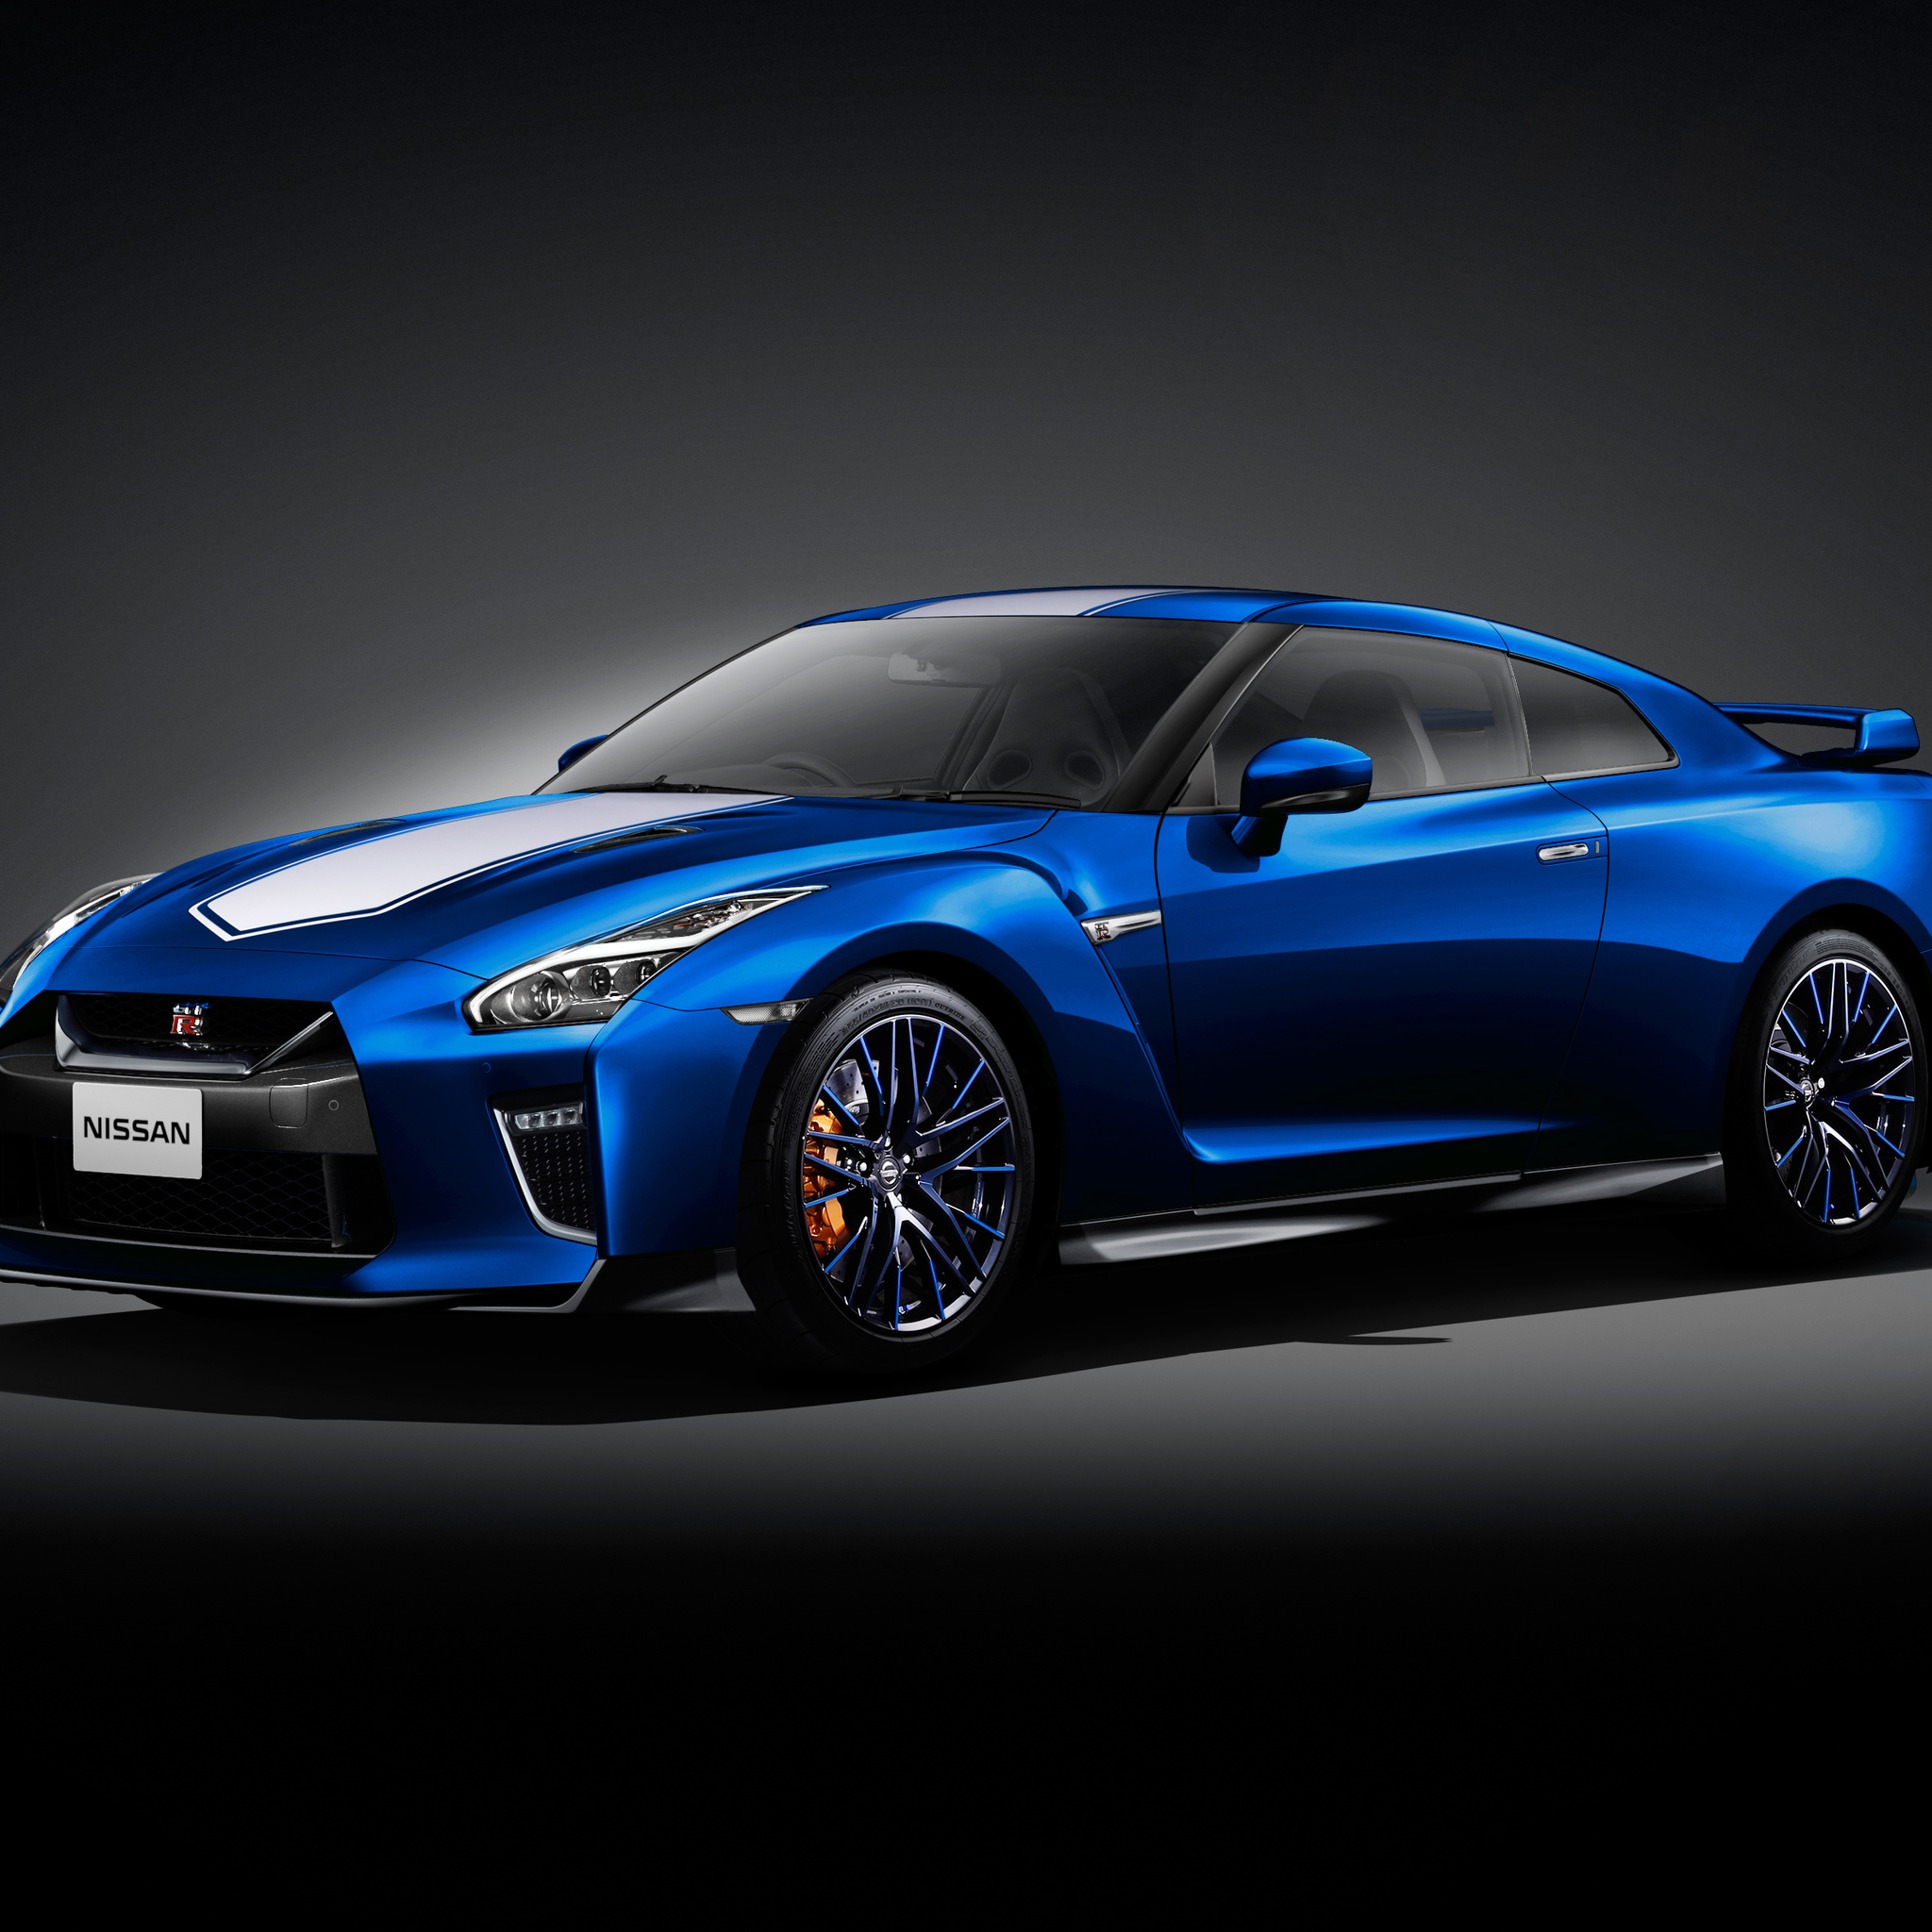 Nissan Gt R 50th Anniversary 2019 Wallpapers Wallpaper Cave